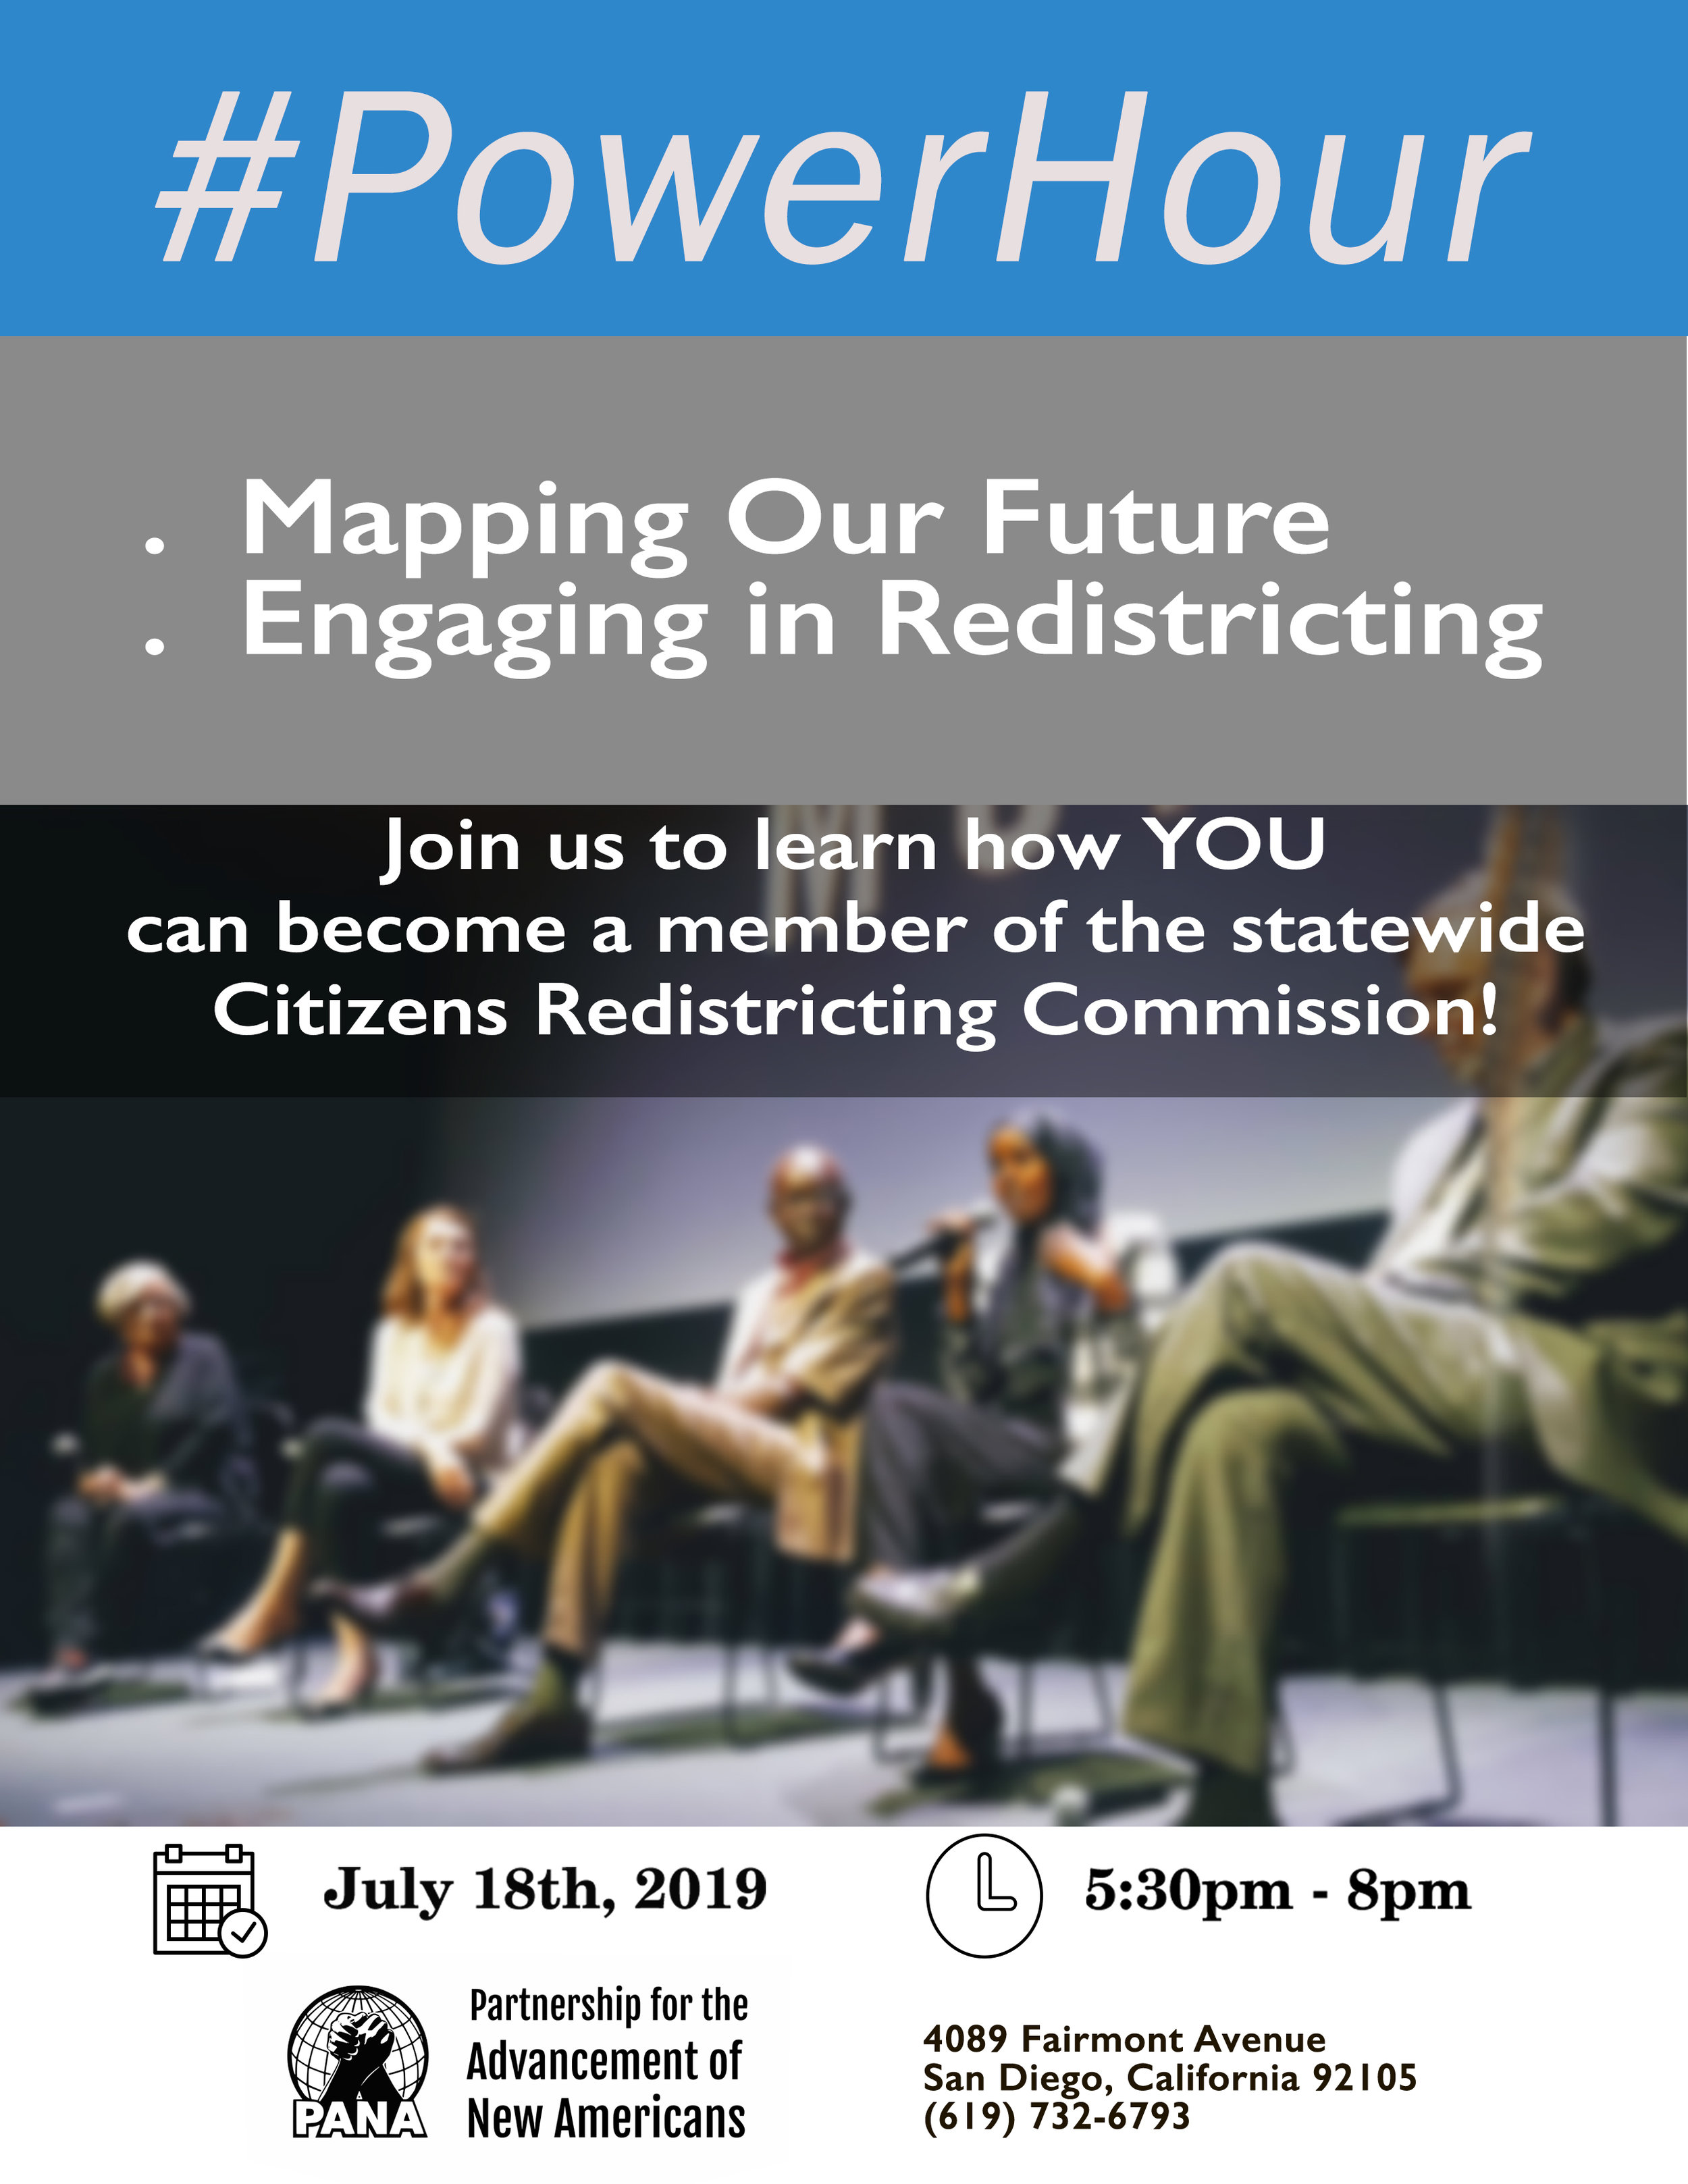 The focus of this conversation will be the importance of redistricting, the role of the Citizens Redistricting Commission, and the opportunity for members of our communities to serve on the Commission - We have the incredible privilege of hosting Kathay Feng, the architect of California's Citizens Redistricting Commission, and Dr. Gil Ontai, a member of the first Citizens Redistricting Commission that drew state's first independent maps in 2011. A representative from the State Auditor's Office, which oversees the Commission selection process, will be present to go over the application process with interested community members.At PANA, we are engaging in daily conversations about the upcoming 2020 Census and ensuring a complete count of everyone in our community. We know so much is at stake, and we want to make sure our efforts and energy around the Census translate into community engagement in redistricting and mapping a fair and inclusive future! Ensuring representation from our diverse communities on the Citizens Redistricting Commission is the critical first step in that process.